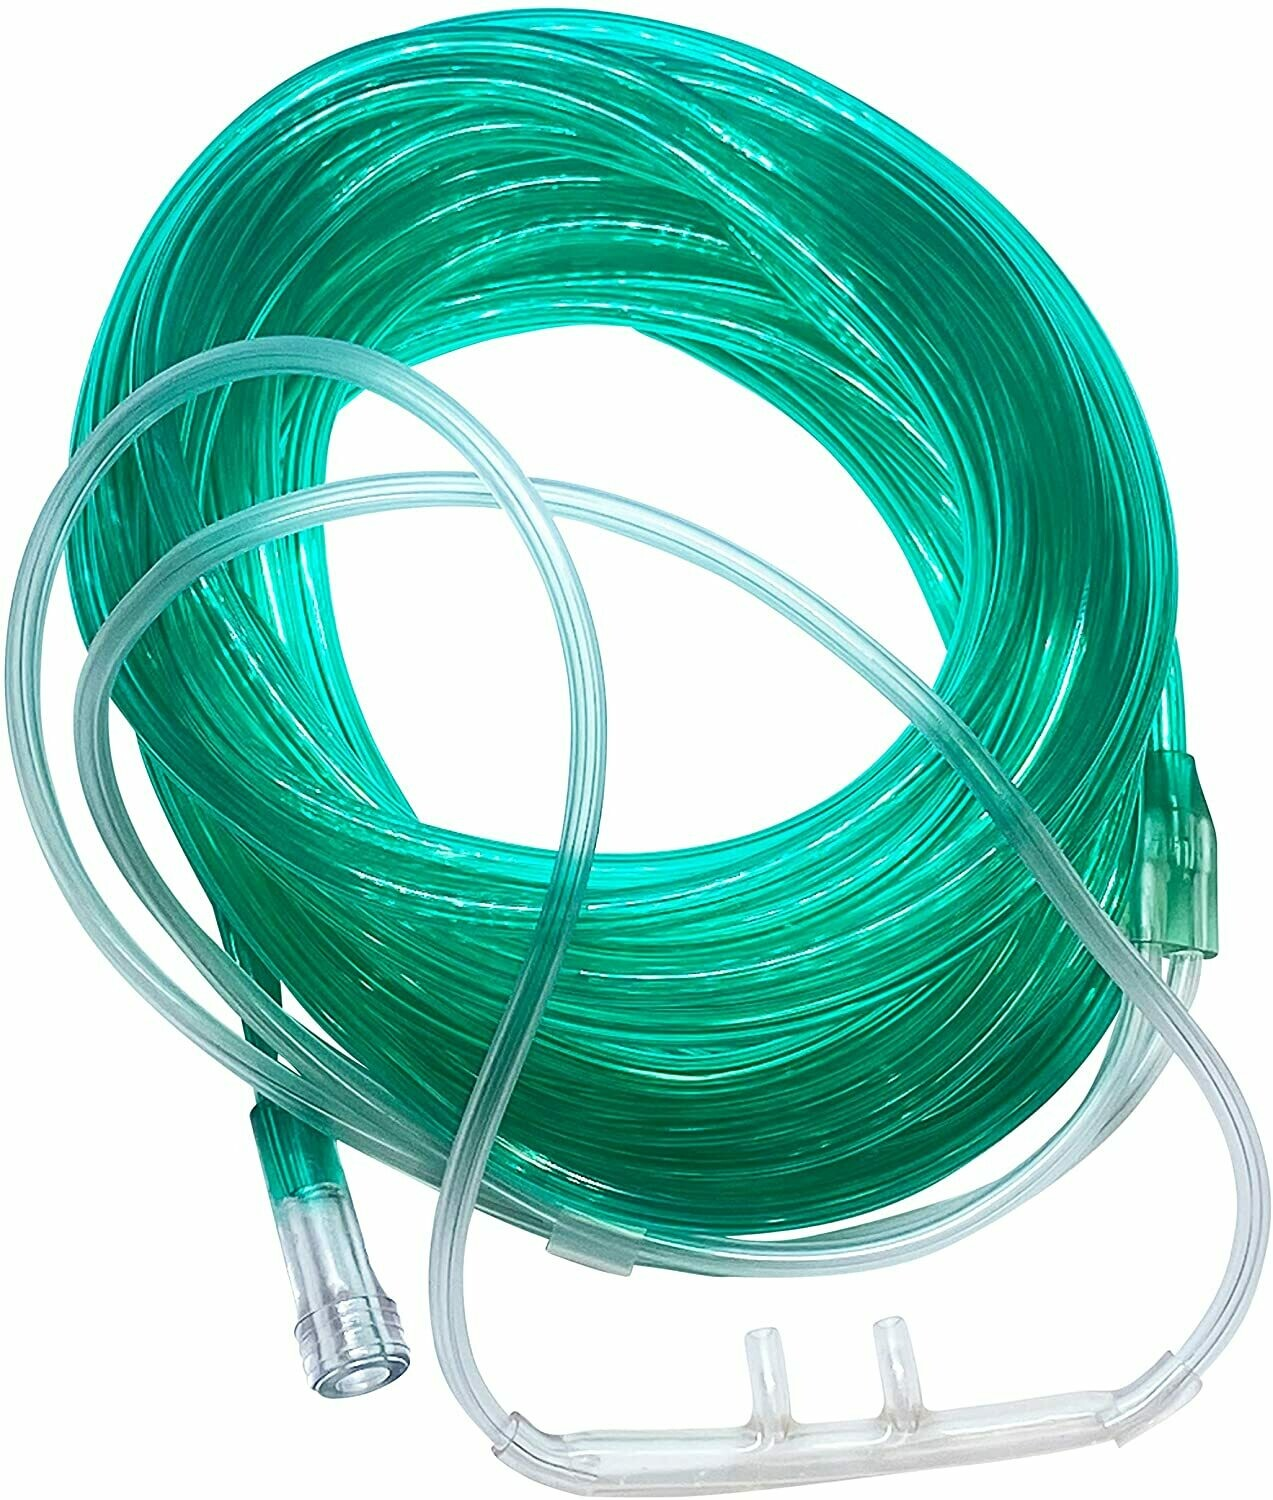 GREEN Crush Resistant 3-Channel Oxygen Supply Tubing